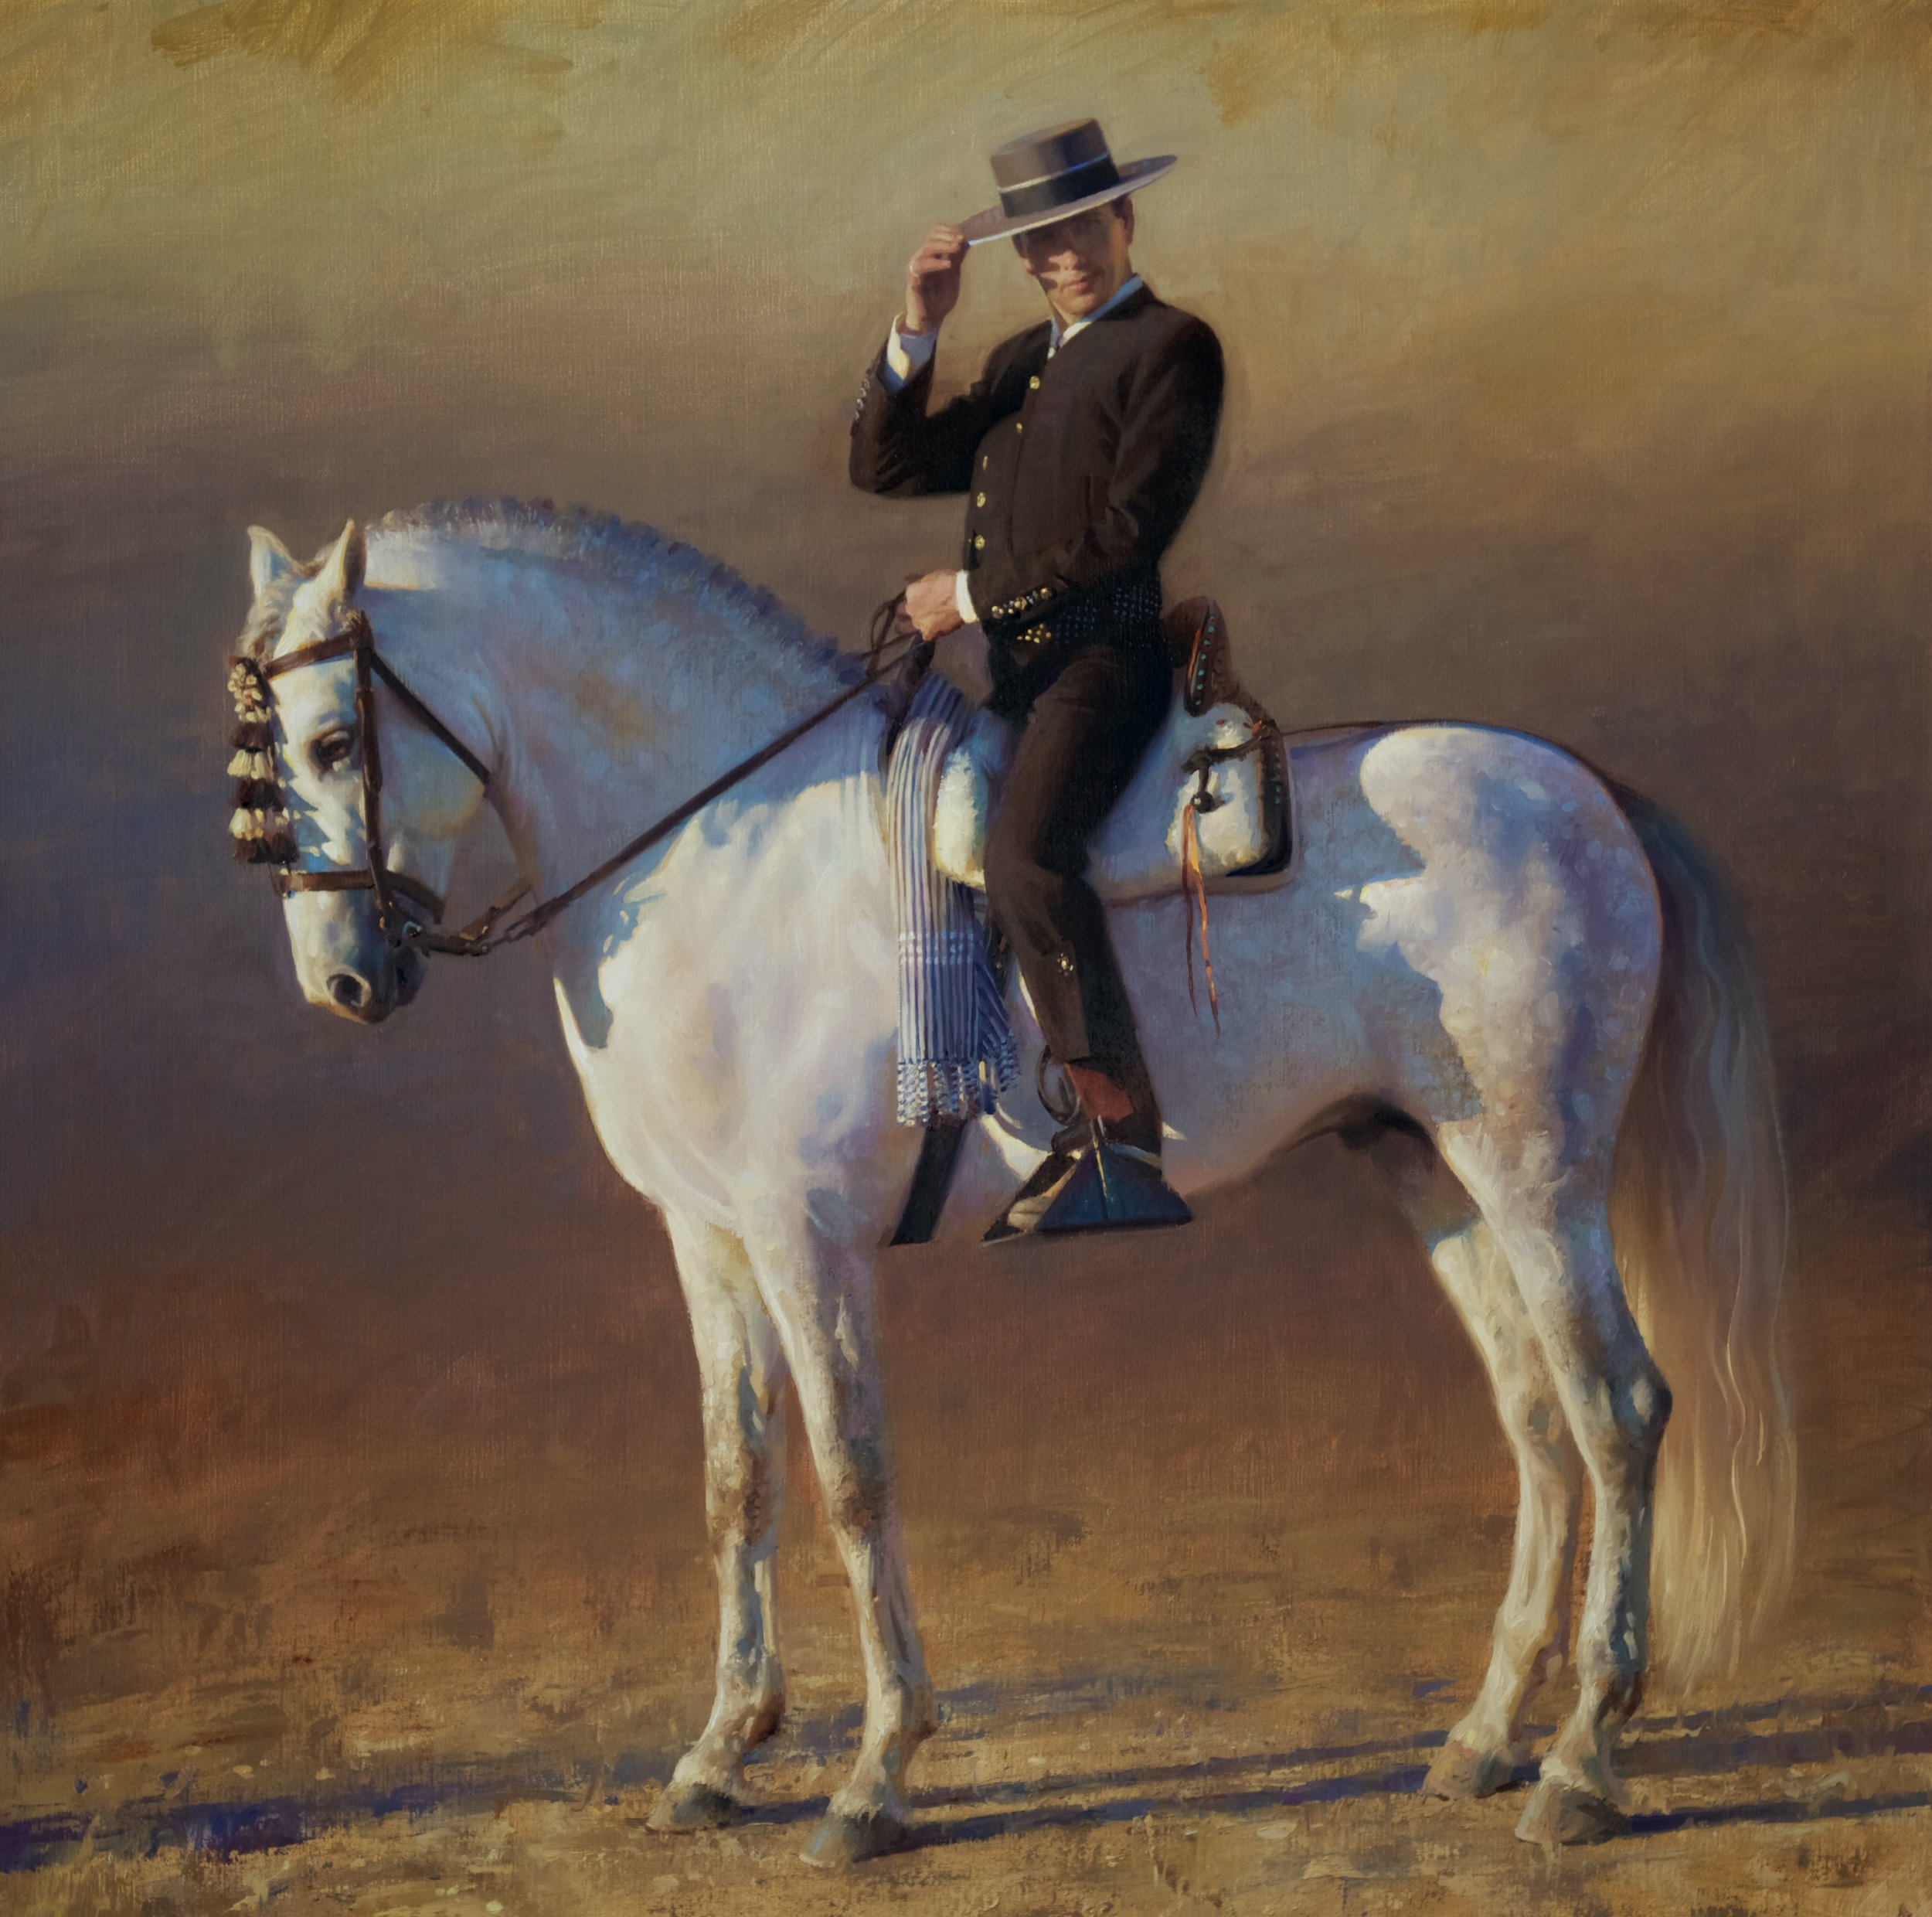 The Andalusian Horseman, 36 x 36, by James Tennison